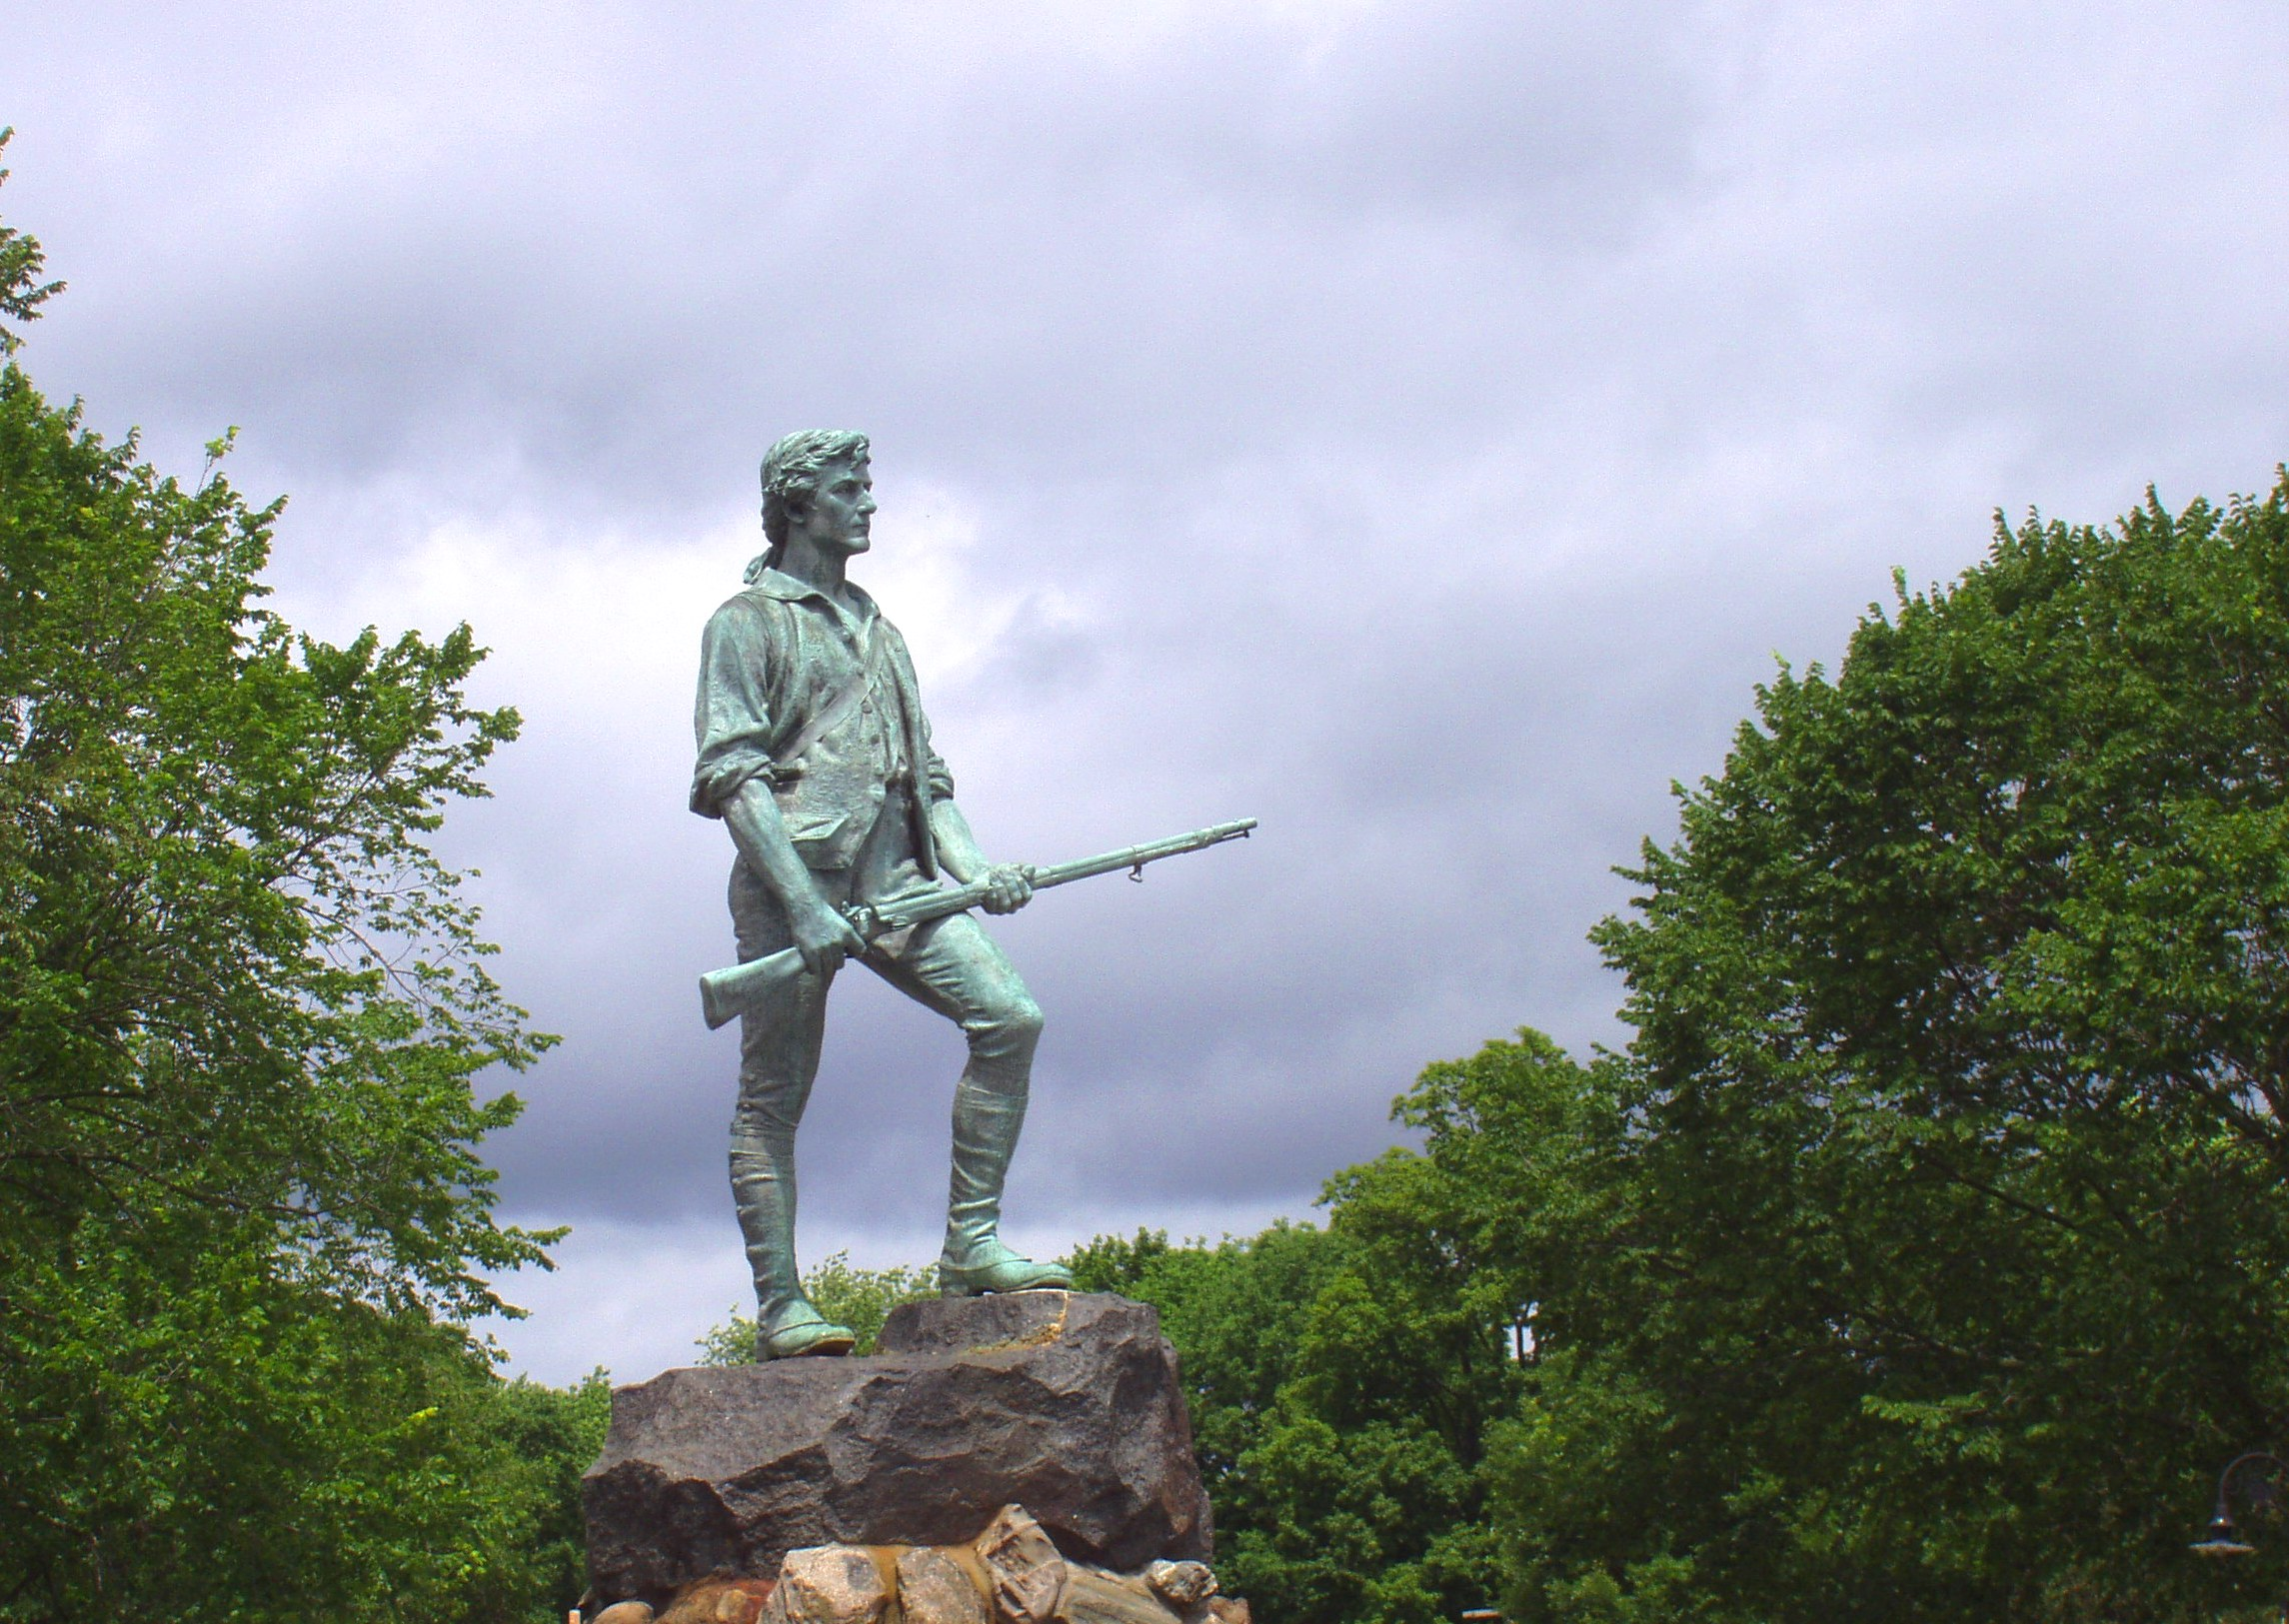 This statue known as The Lexington Minuteman is commonly believed to depict Captain John Parker. It is by Henry Hudson Kitson and stands at the town green of Lexington, Massachusetts.